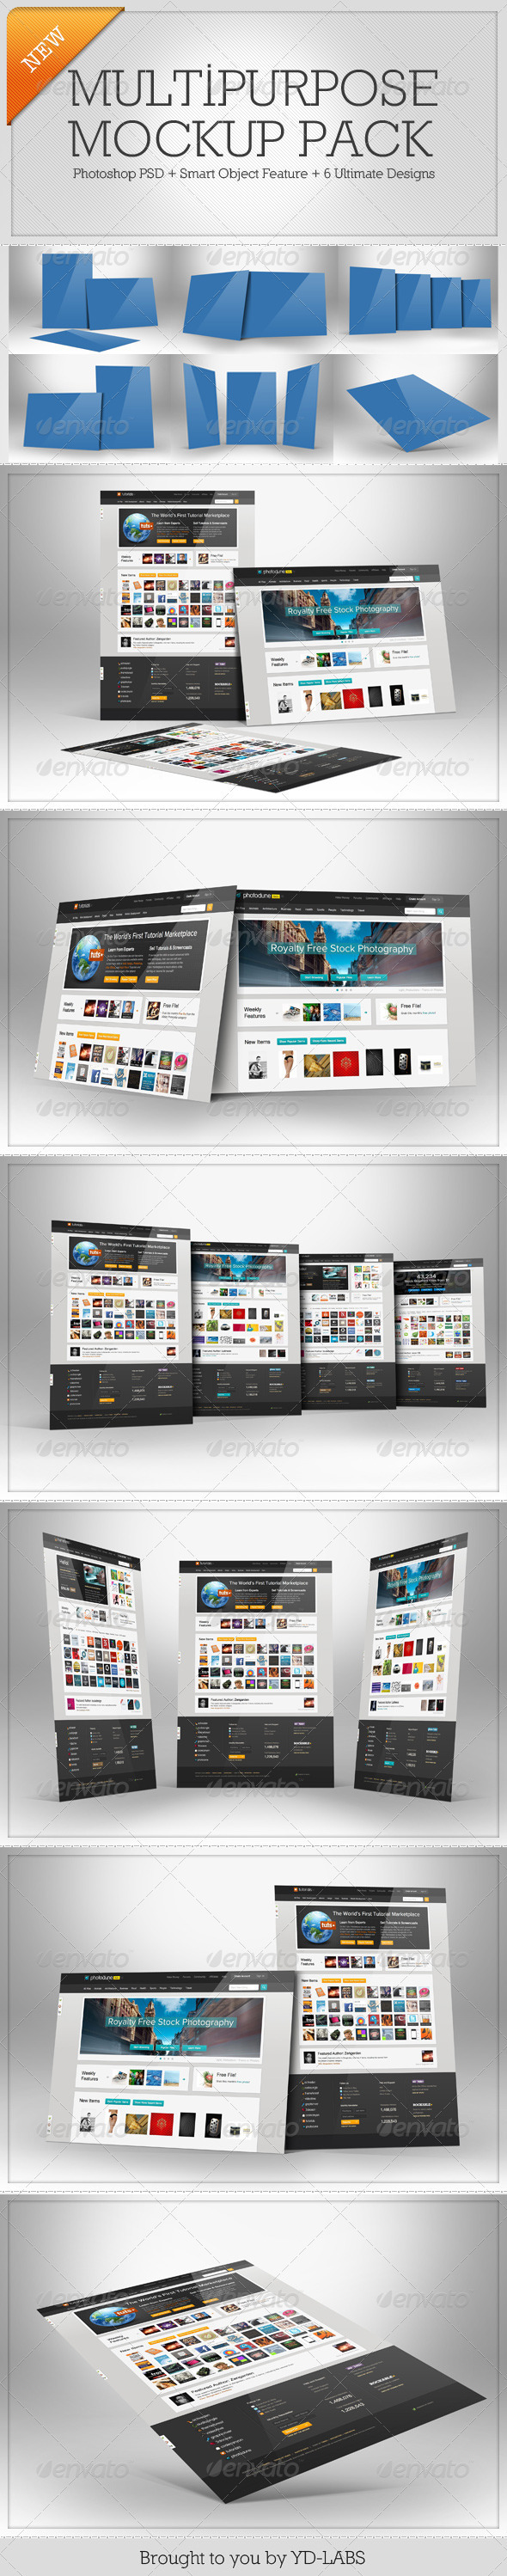 Multipurpose Mockup Pack 1 - Miscellaneous Displays